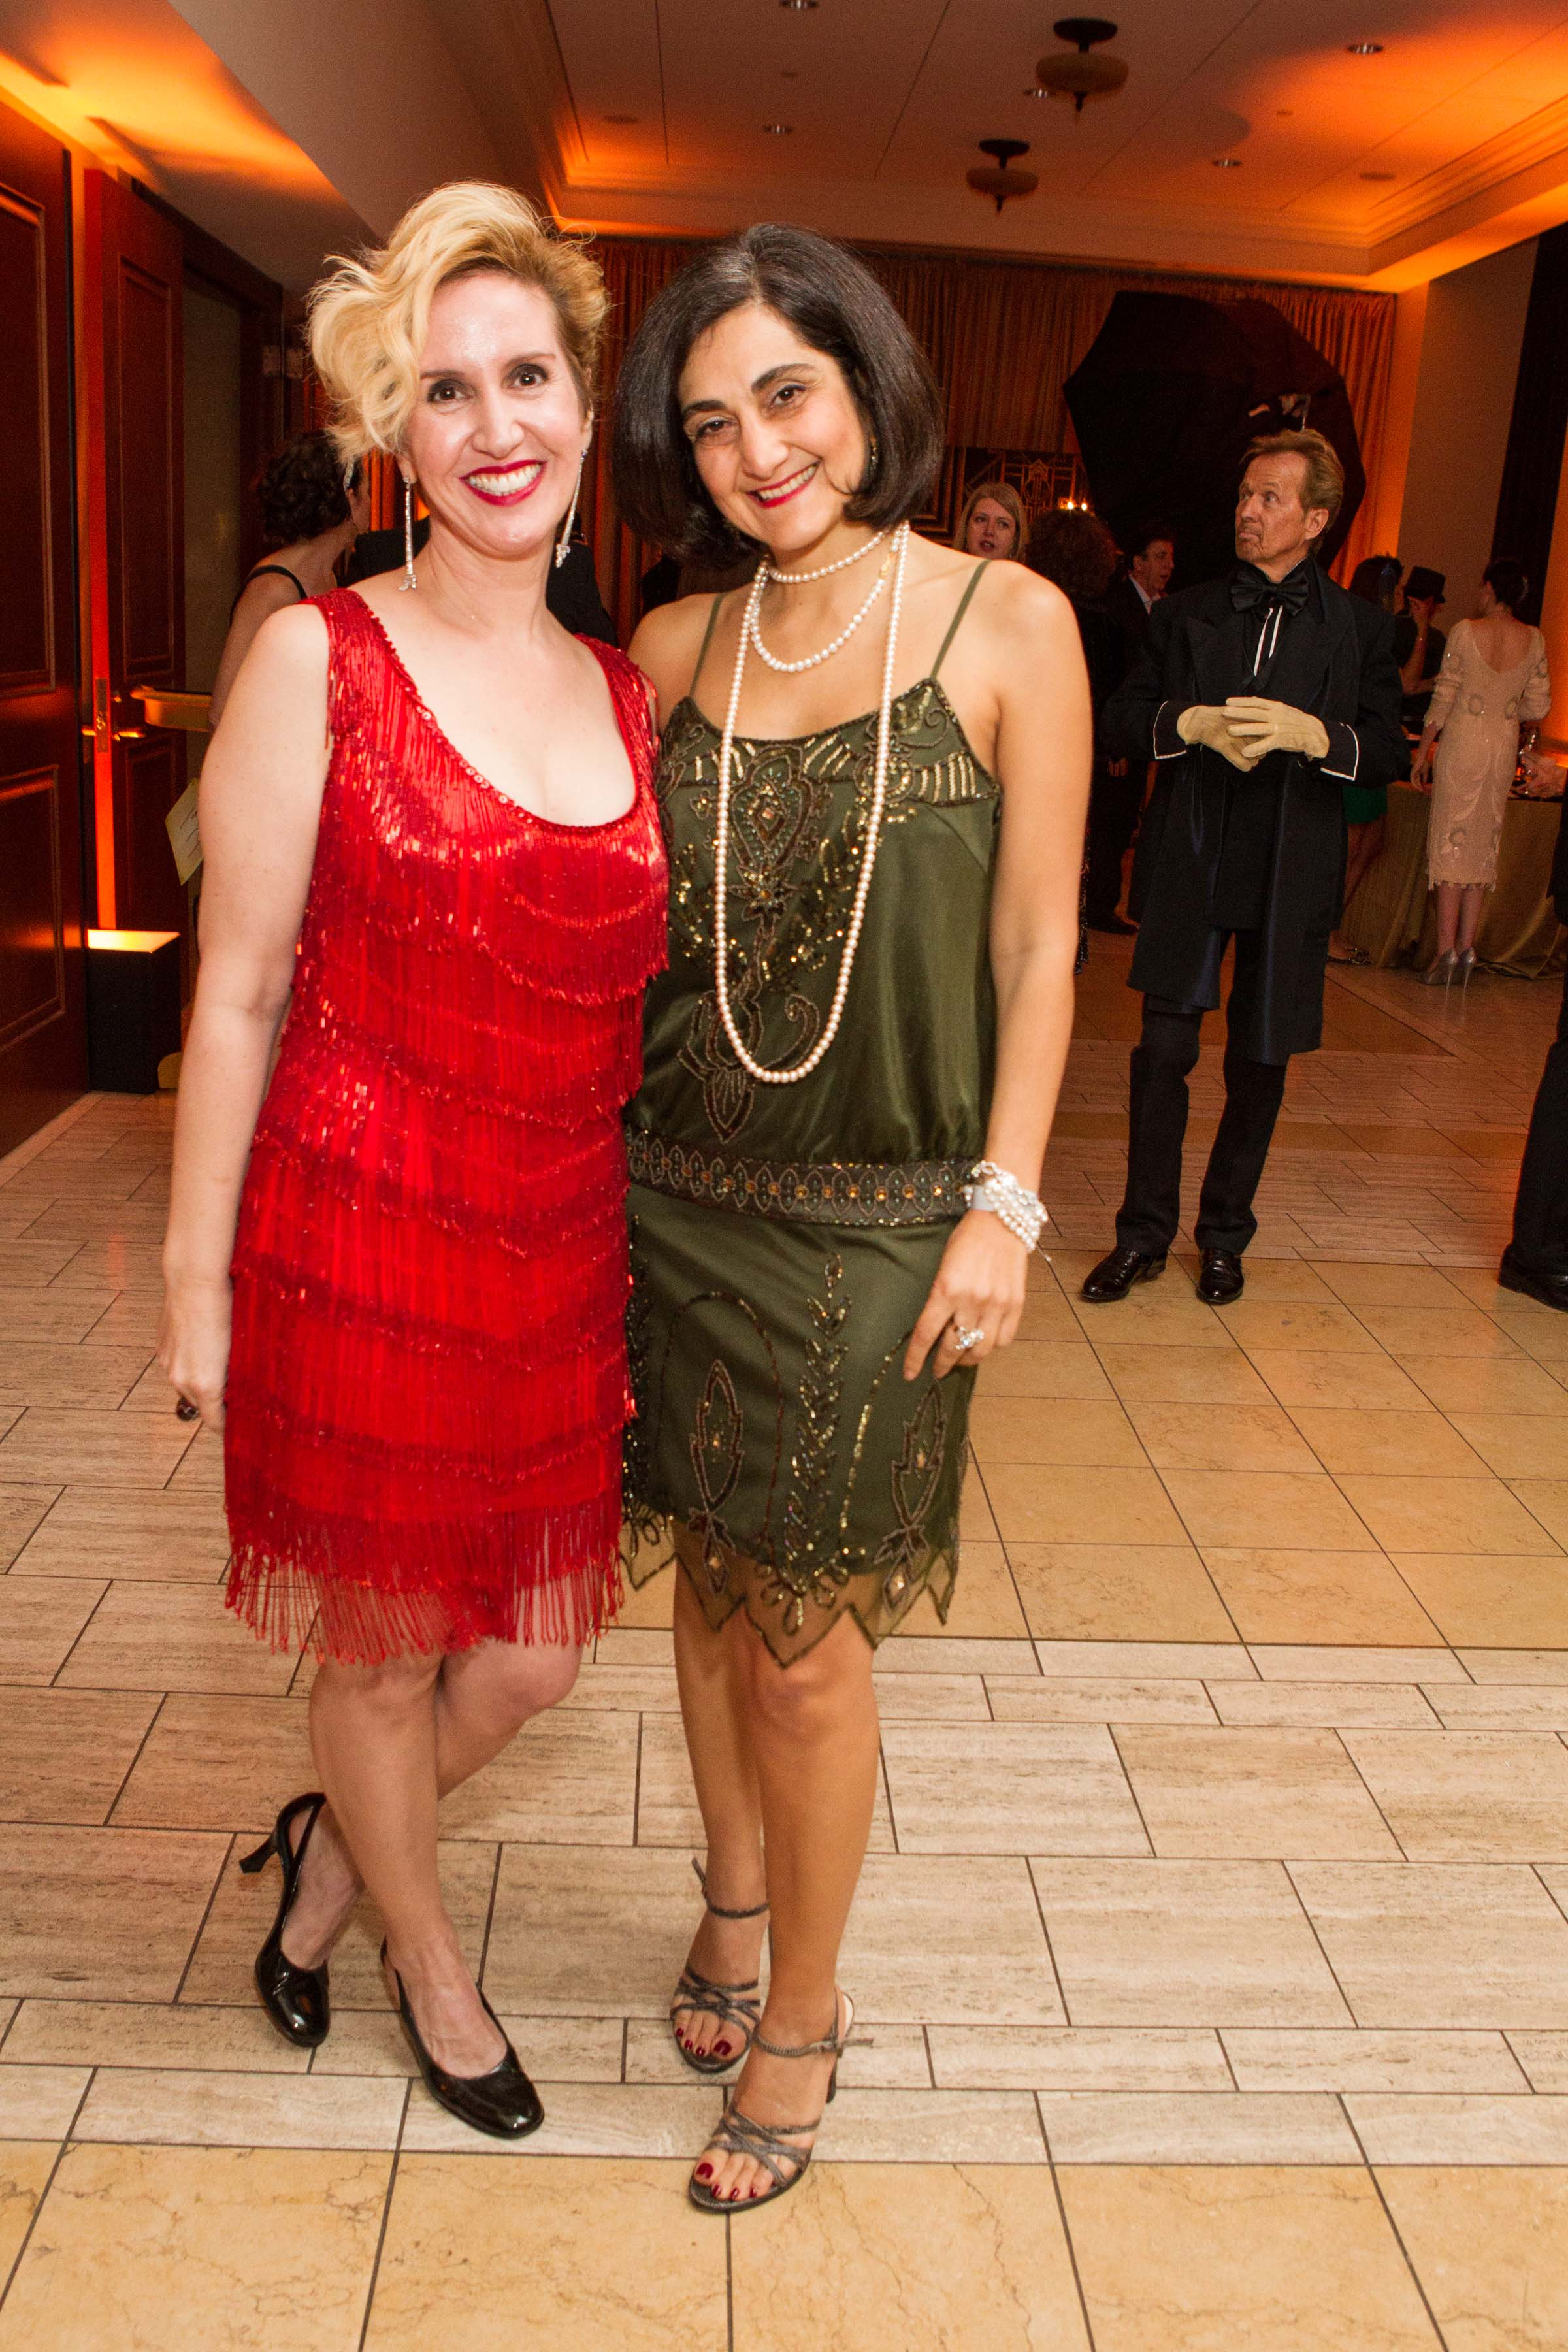 Lisa Sardegna and Fati Farmanfarmaian